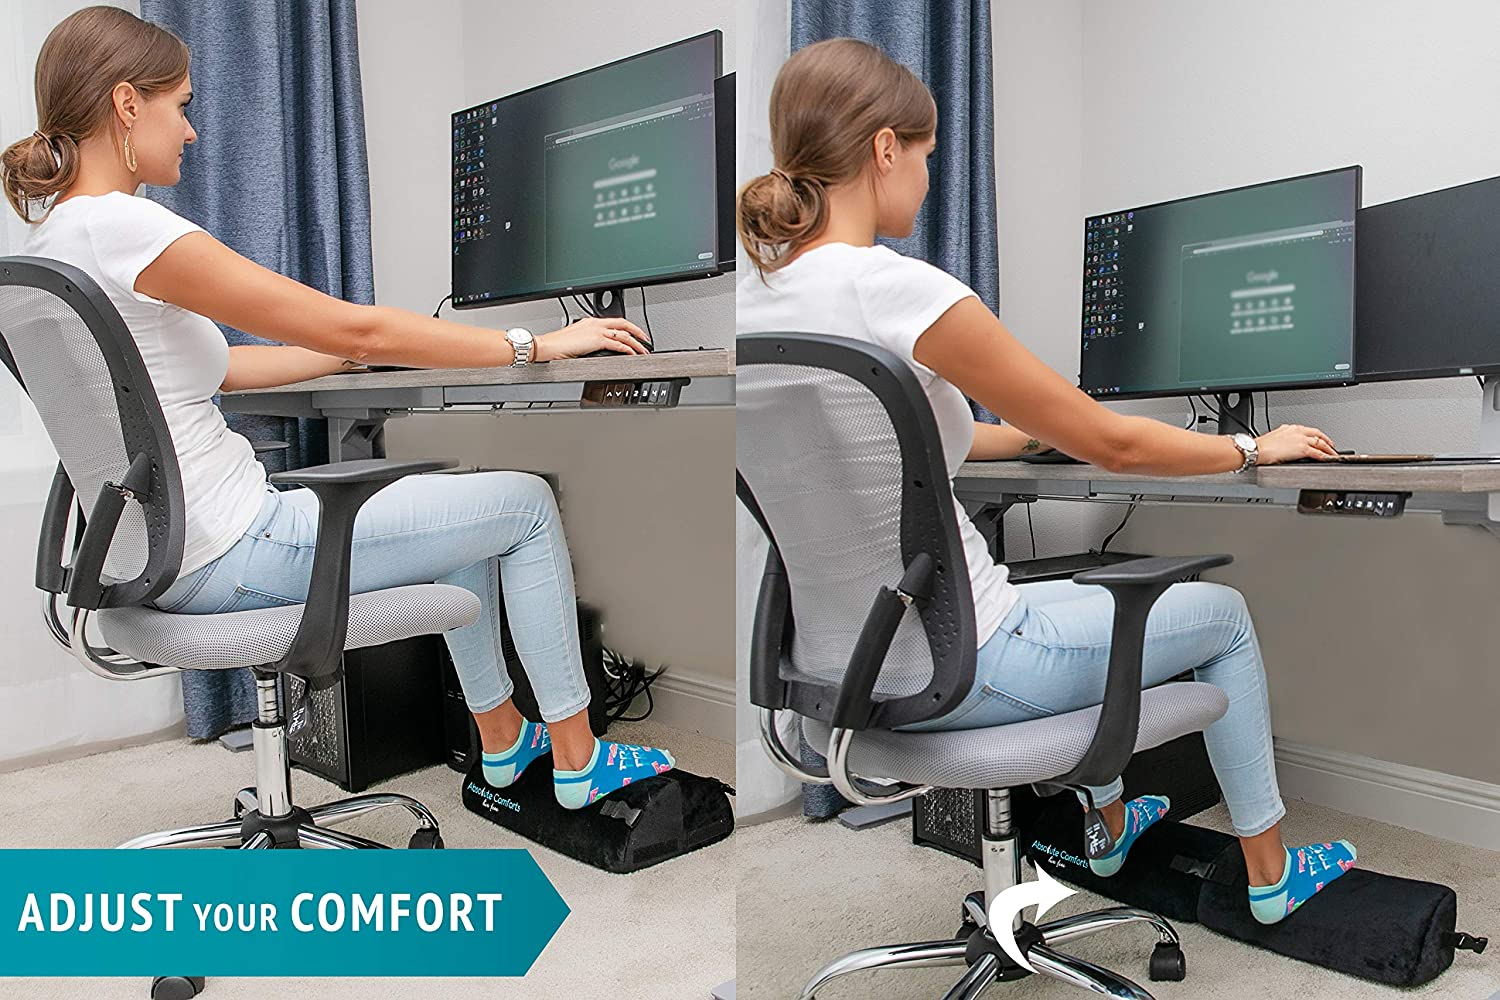 New 2X Adjustable Length – Foot Rest Under Desk Multi-Functional Ergonomic Footrest Design for Office Home – Resilient Foam Cushion with Anti-Slip Bottom Foot Stool Rocker for Absolute Comfort